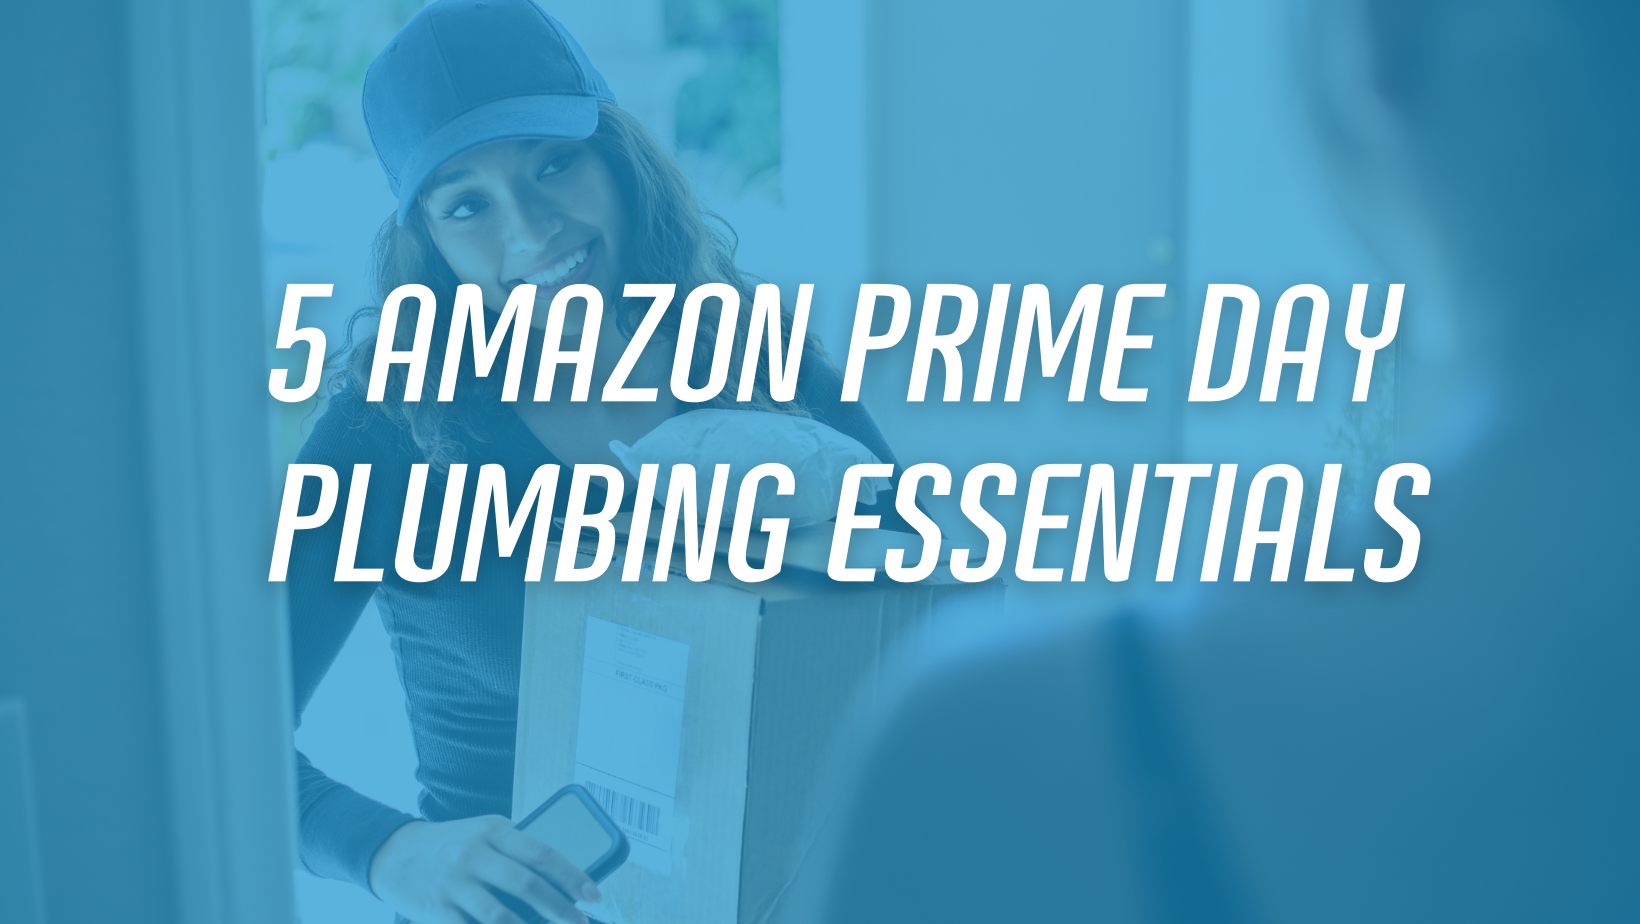 5 Amazon Prime Day Plumbing Essentials from Ease Plumbing and Air